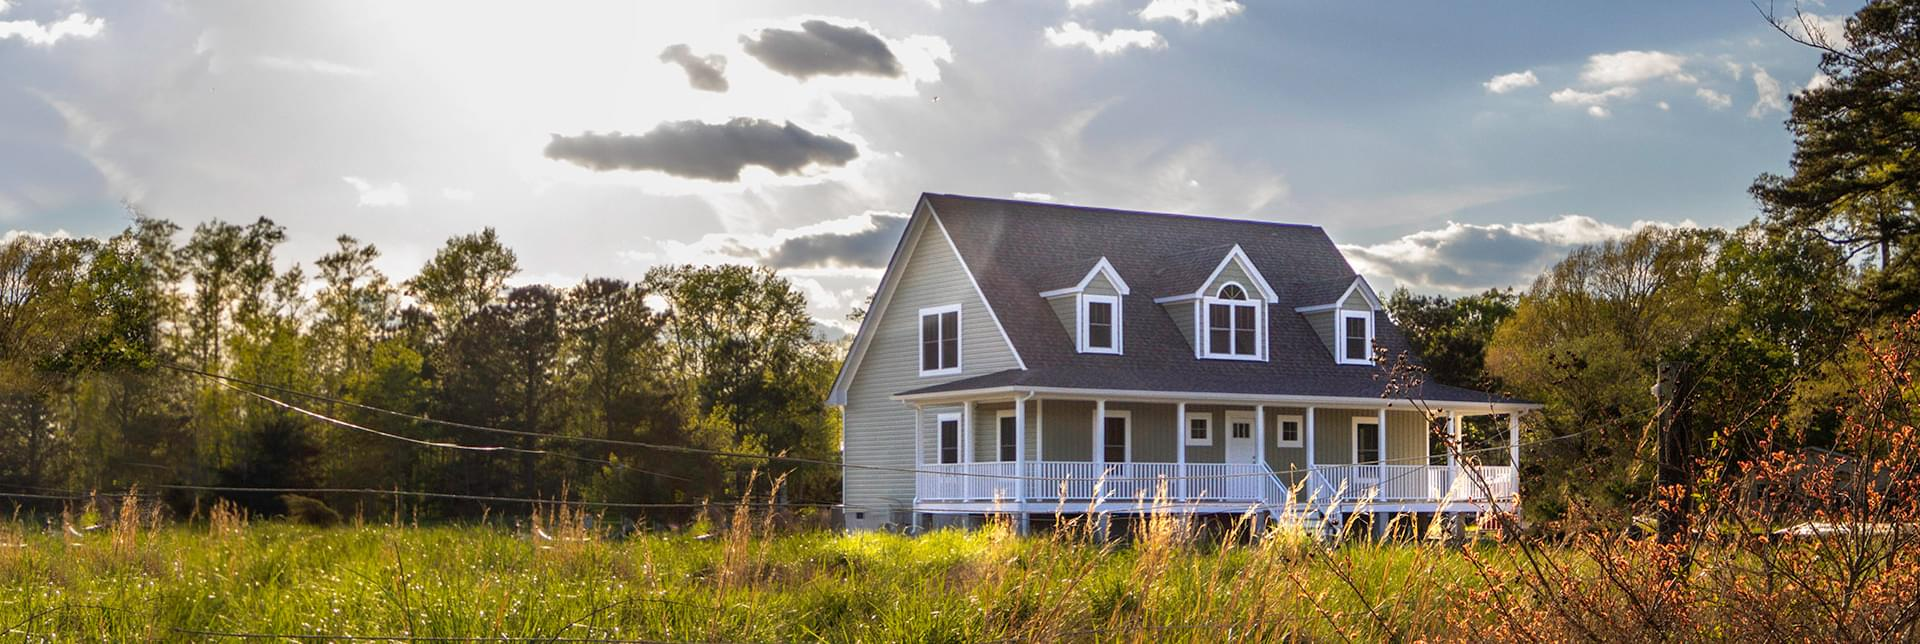 New Homes in Chowan County NC